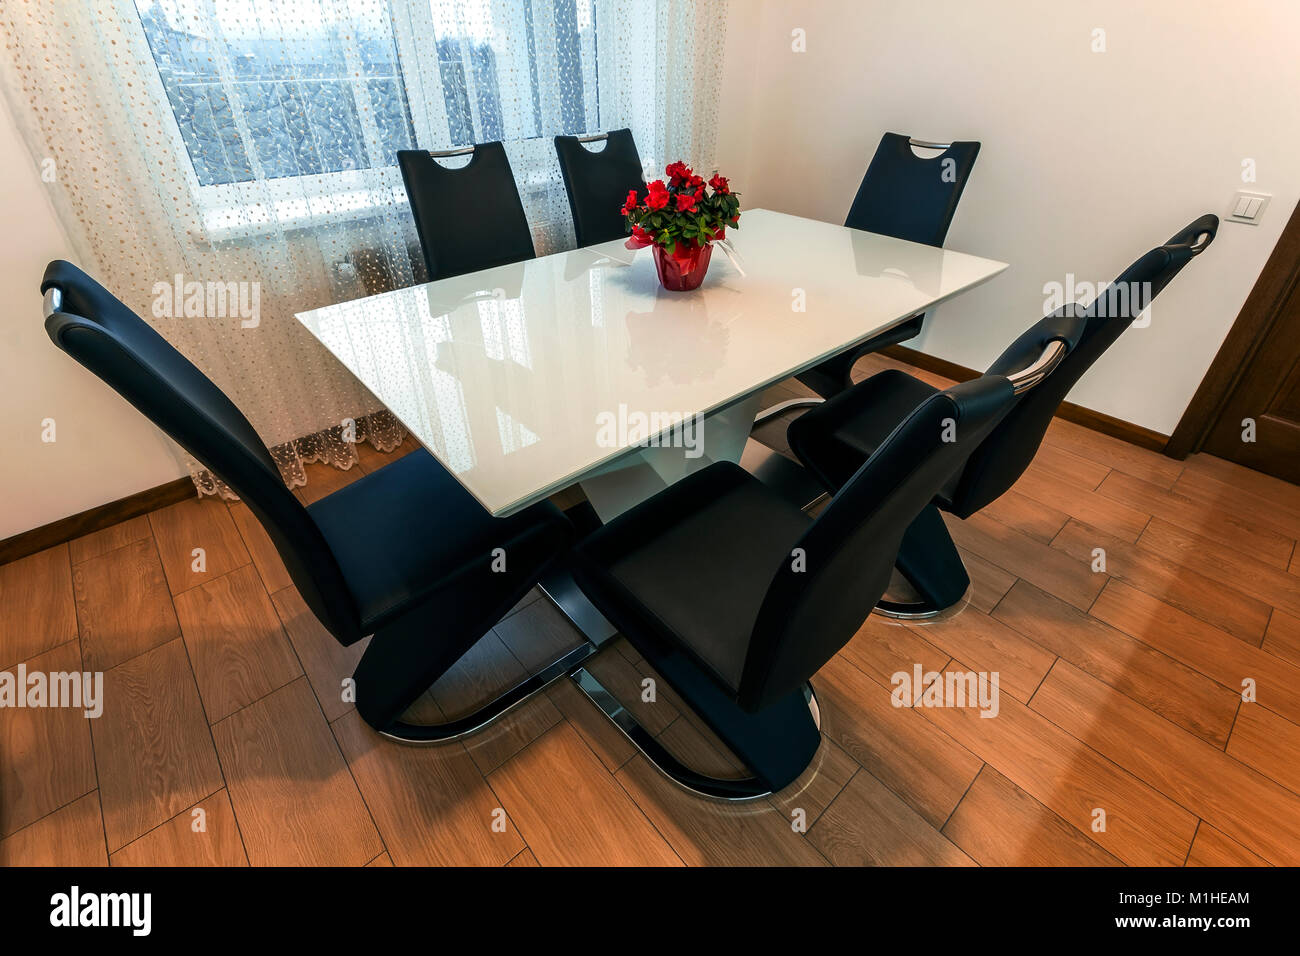 White Wooden And Glass Round Dining Table With Six Chairs Modern Stock Photo Alamy